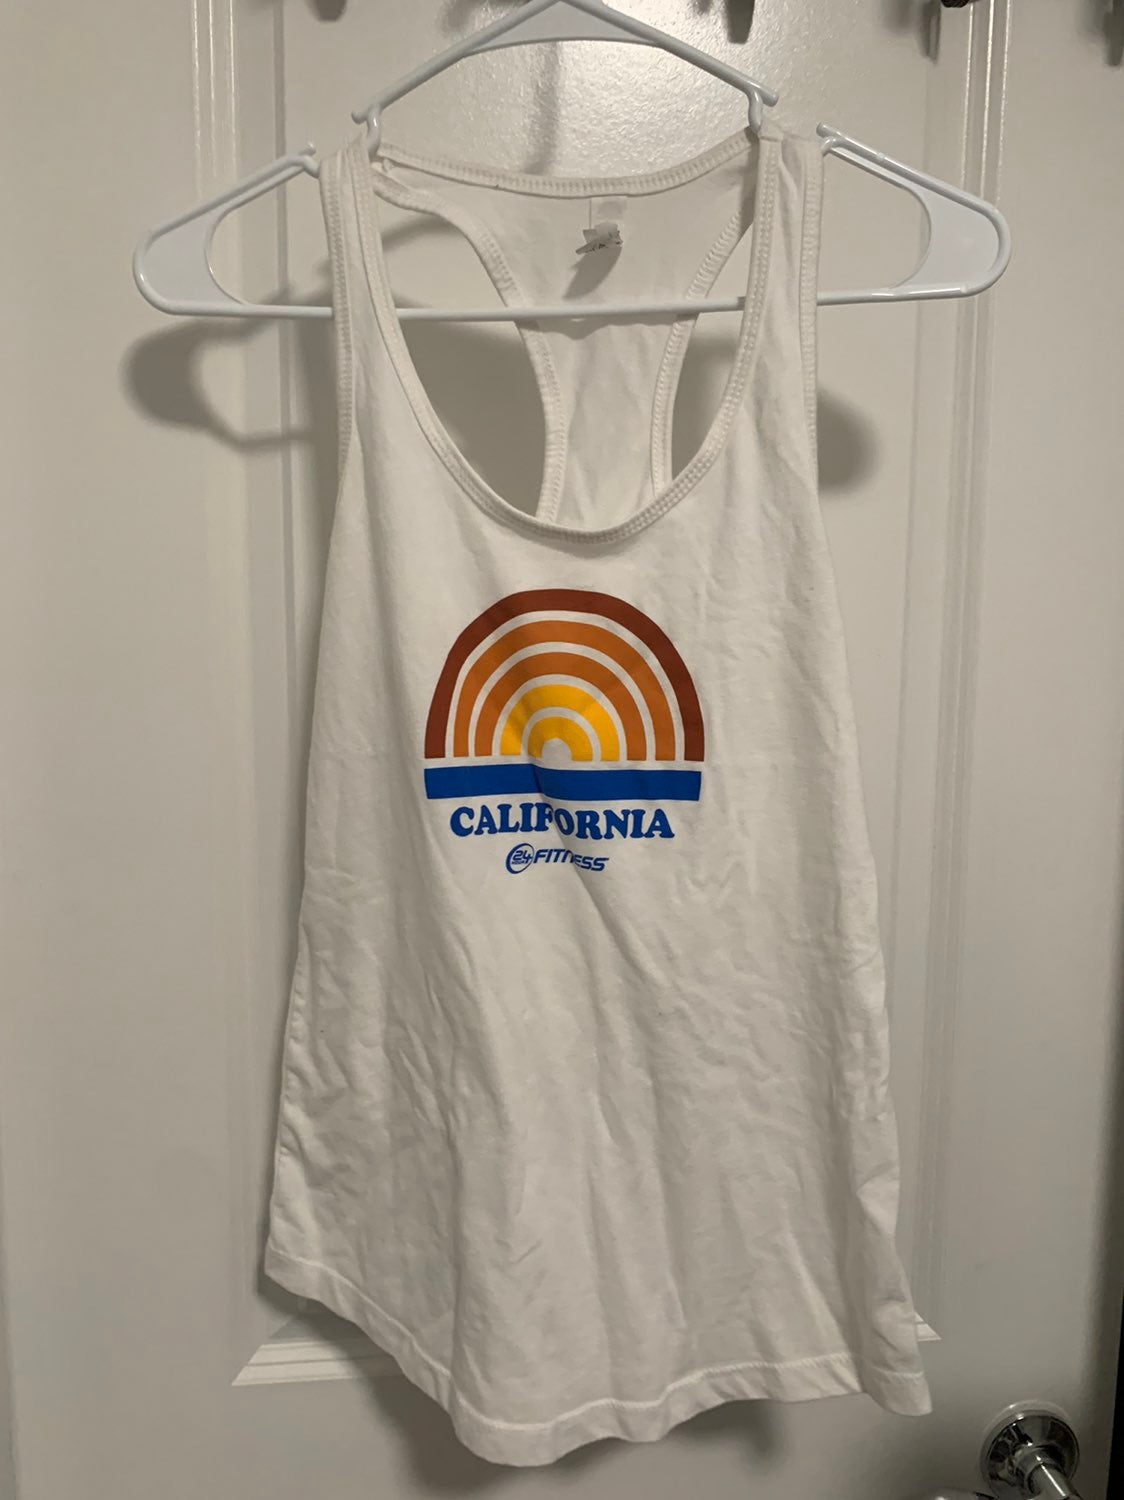 24hr Fitness Workout Tank Top